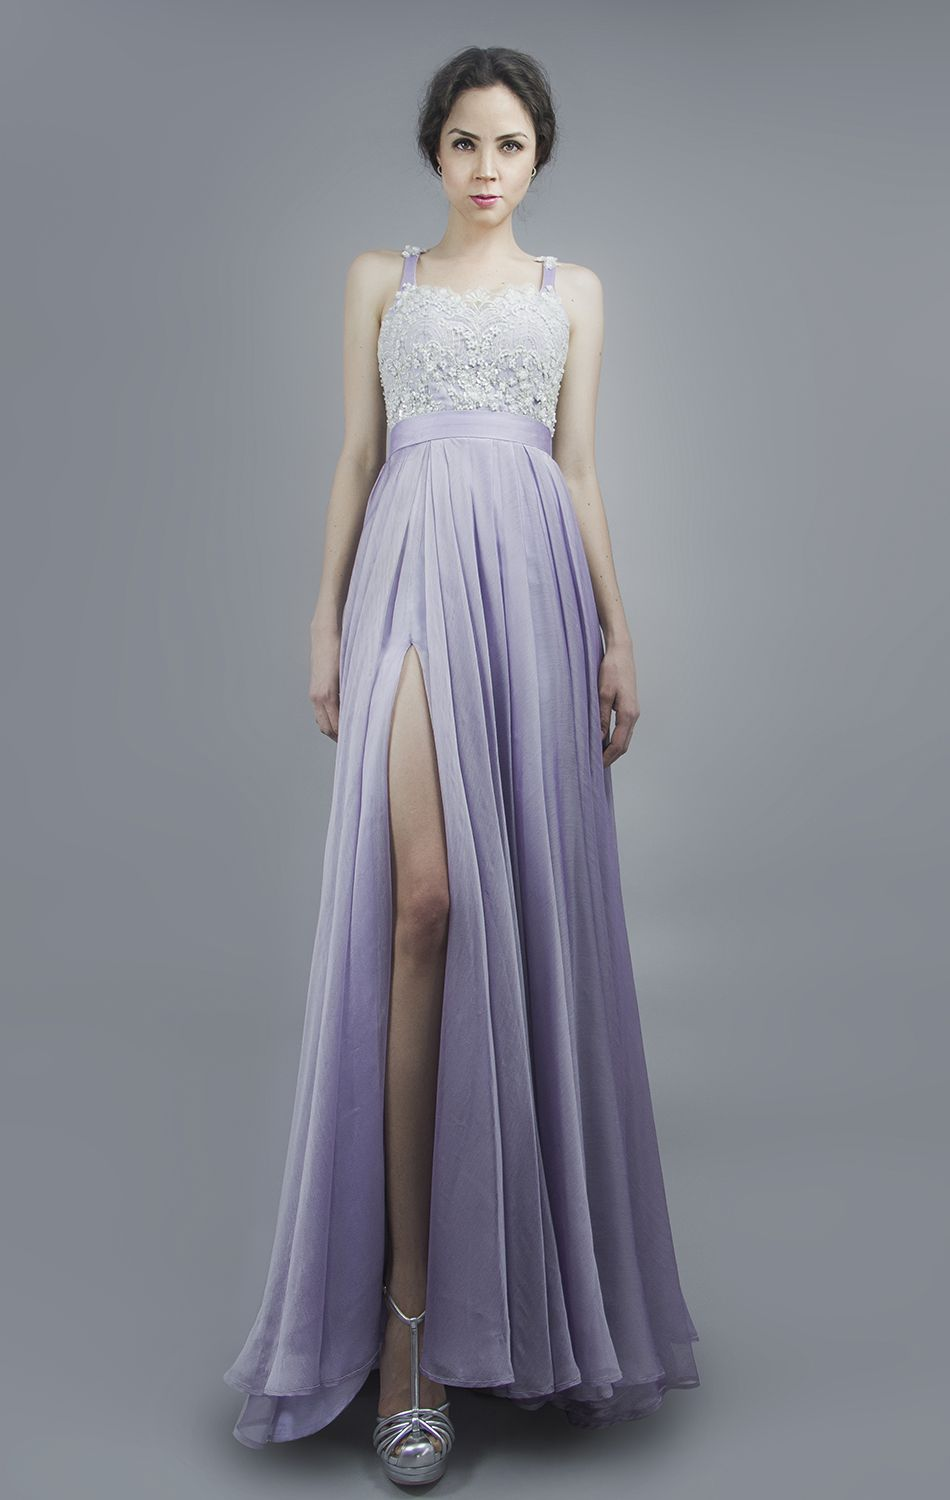 Gown Dress 59